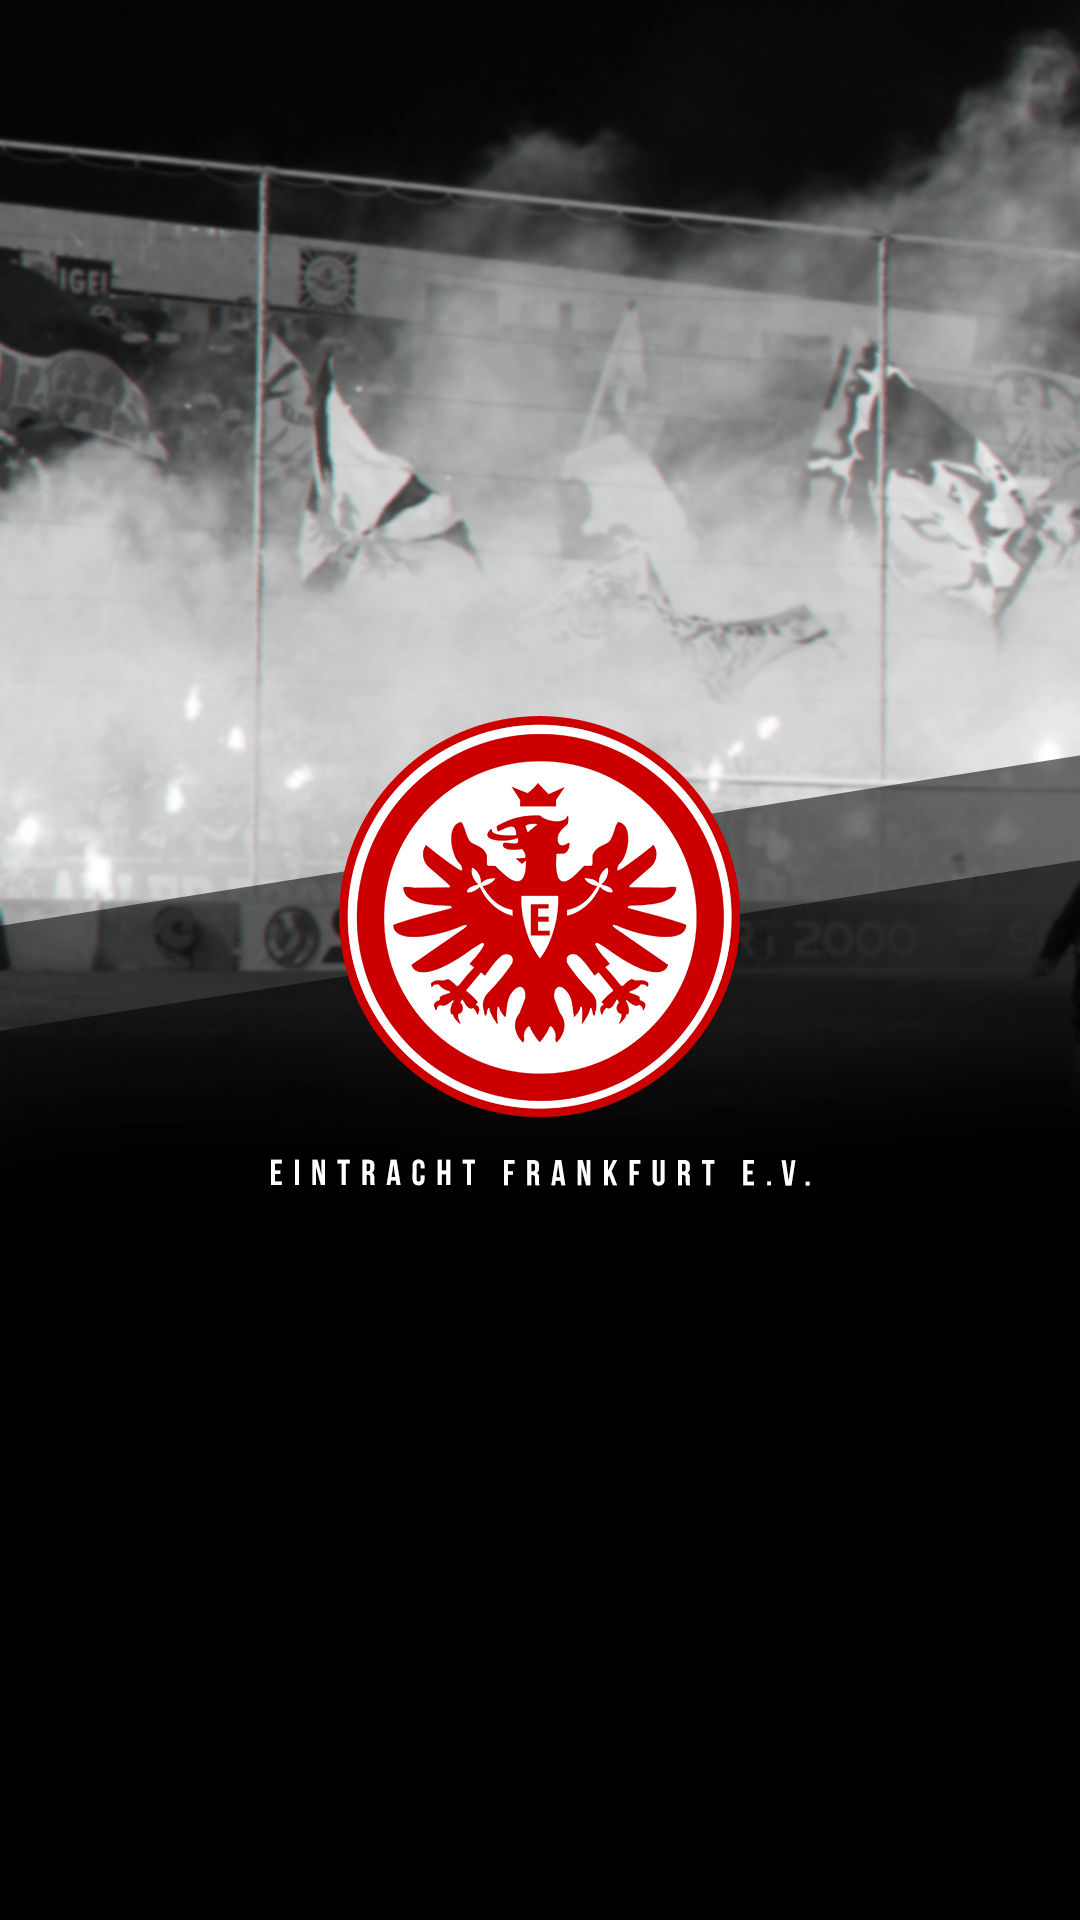 Eintracht Frankfurt Wallpapers - Wallpaper Cave